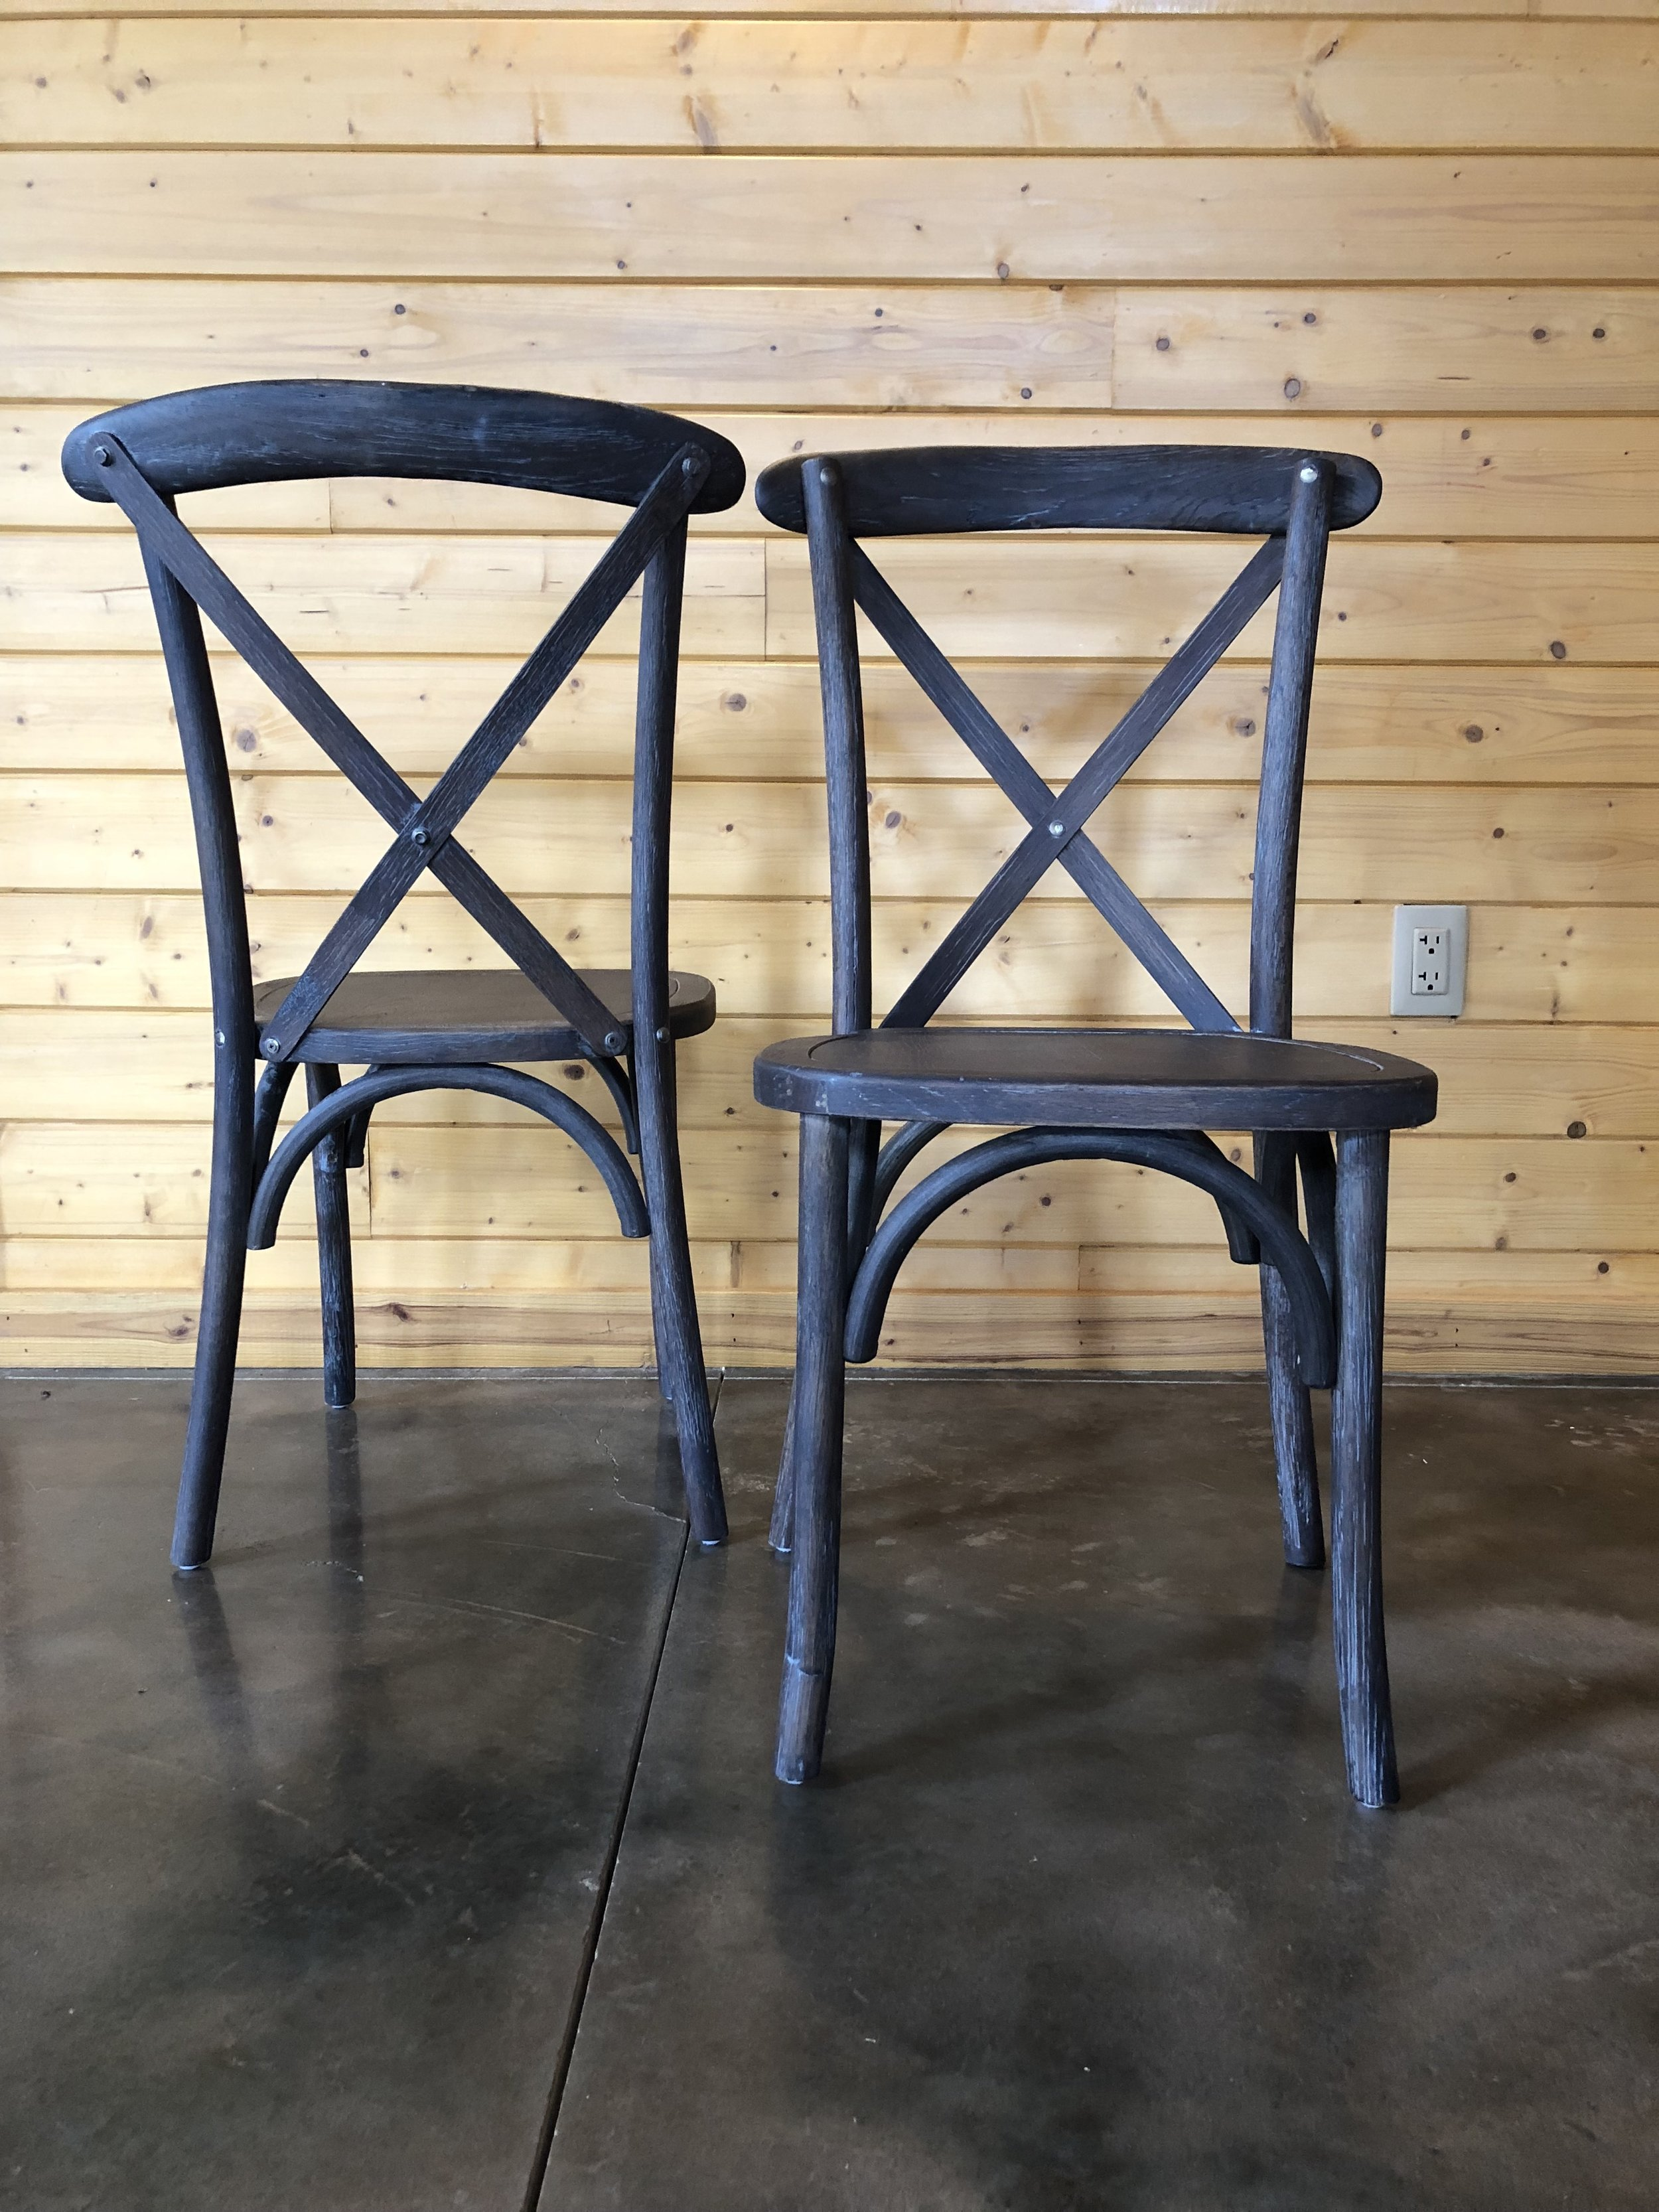 We are so excited for our new chairs and every couple that has seen them, loves them too!